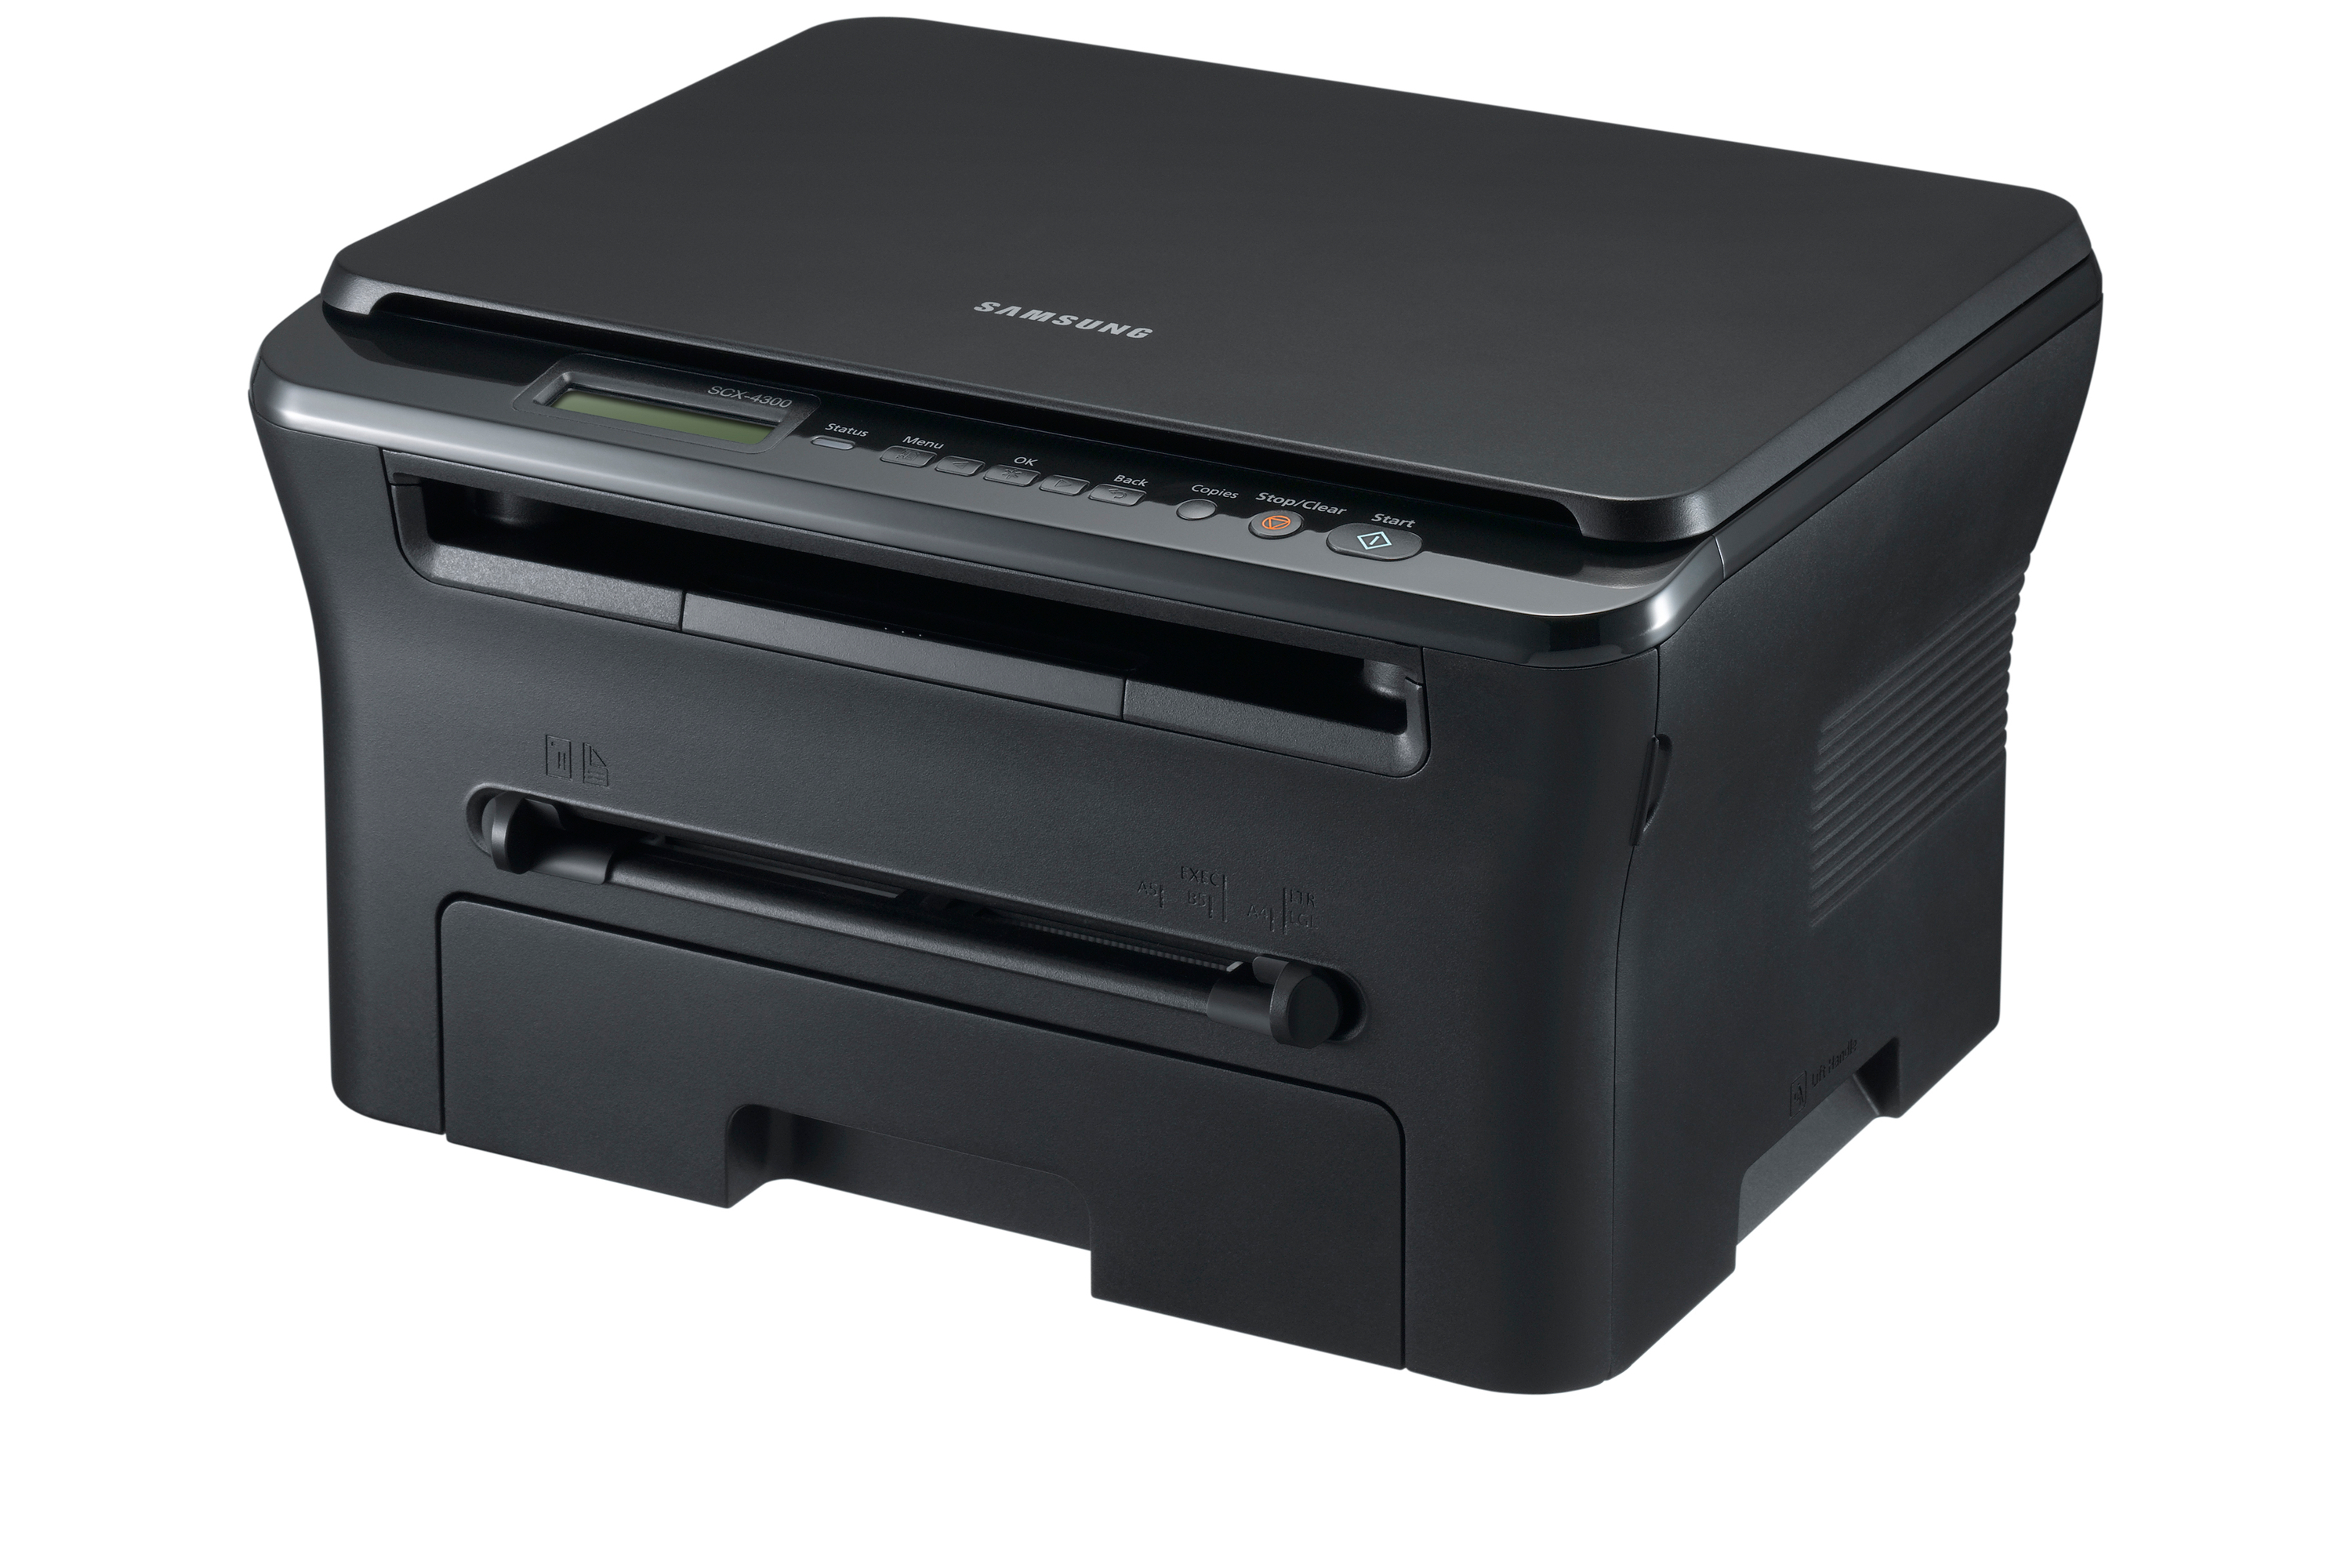 Scx 4300 scanner drivers for windows download.